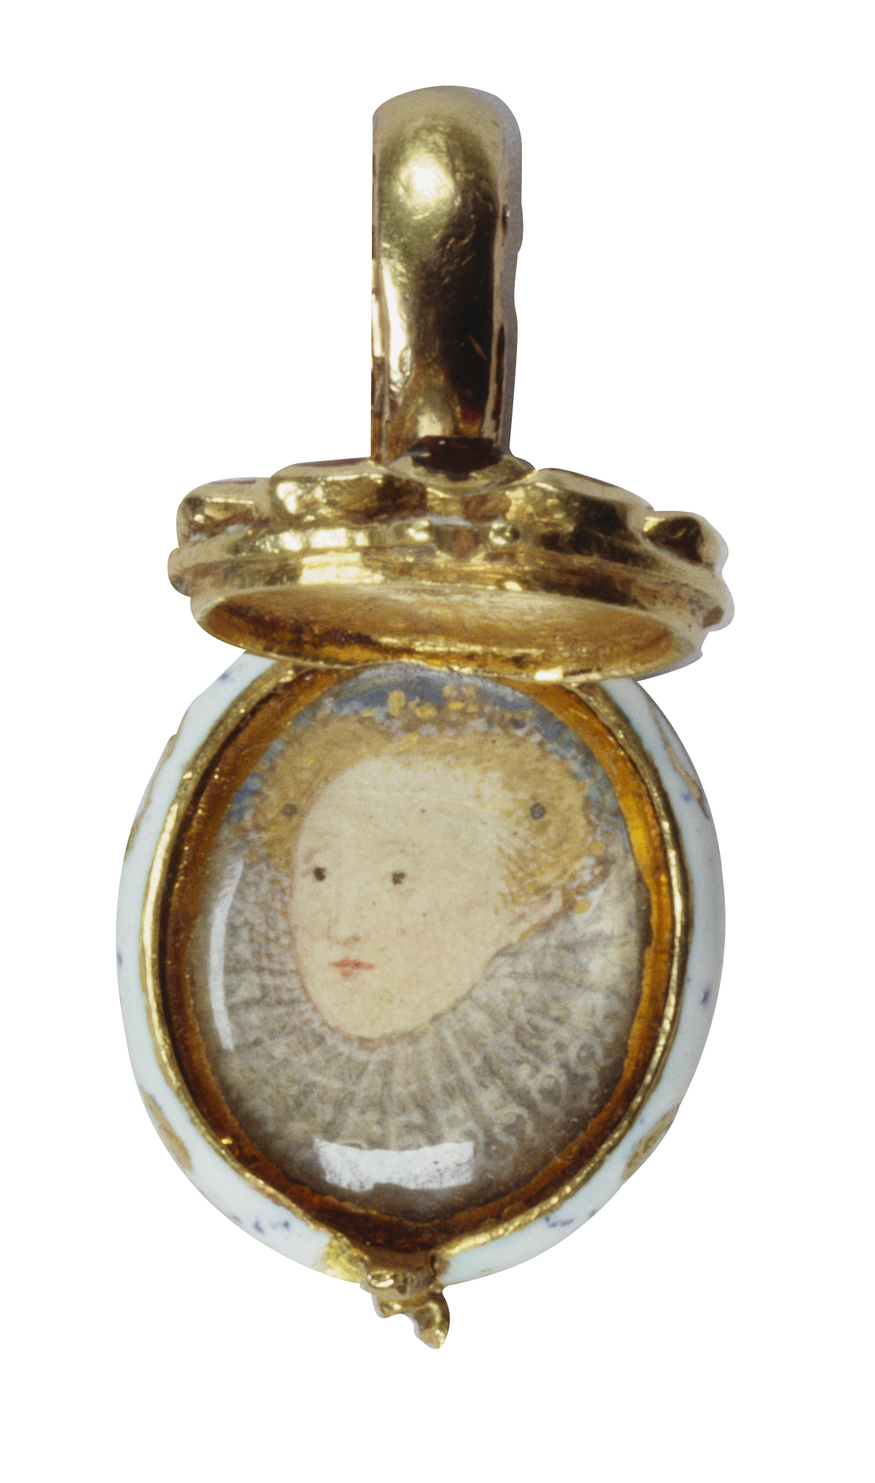 Pendant made of gold, rubies and a diamond, probably worn as an earring, with a miniature of Elizabeth I, c.1585-1600  Royal Collection Trust/ (C) 2013, Her Majesty Queen Elizabeth II